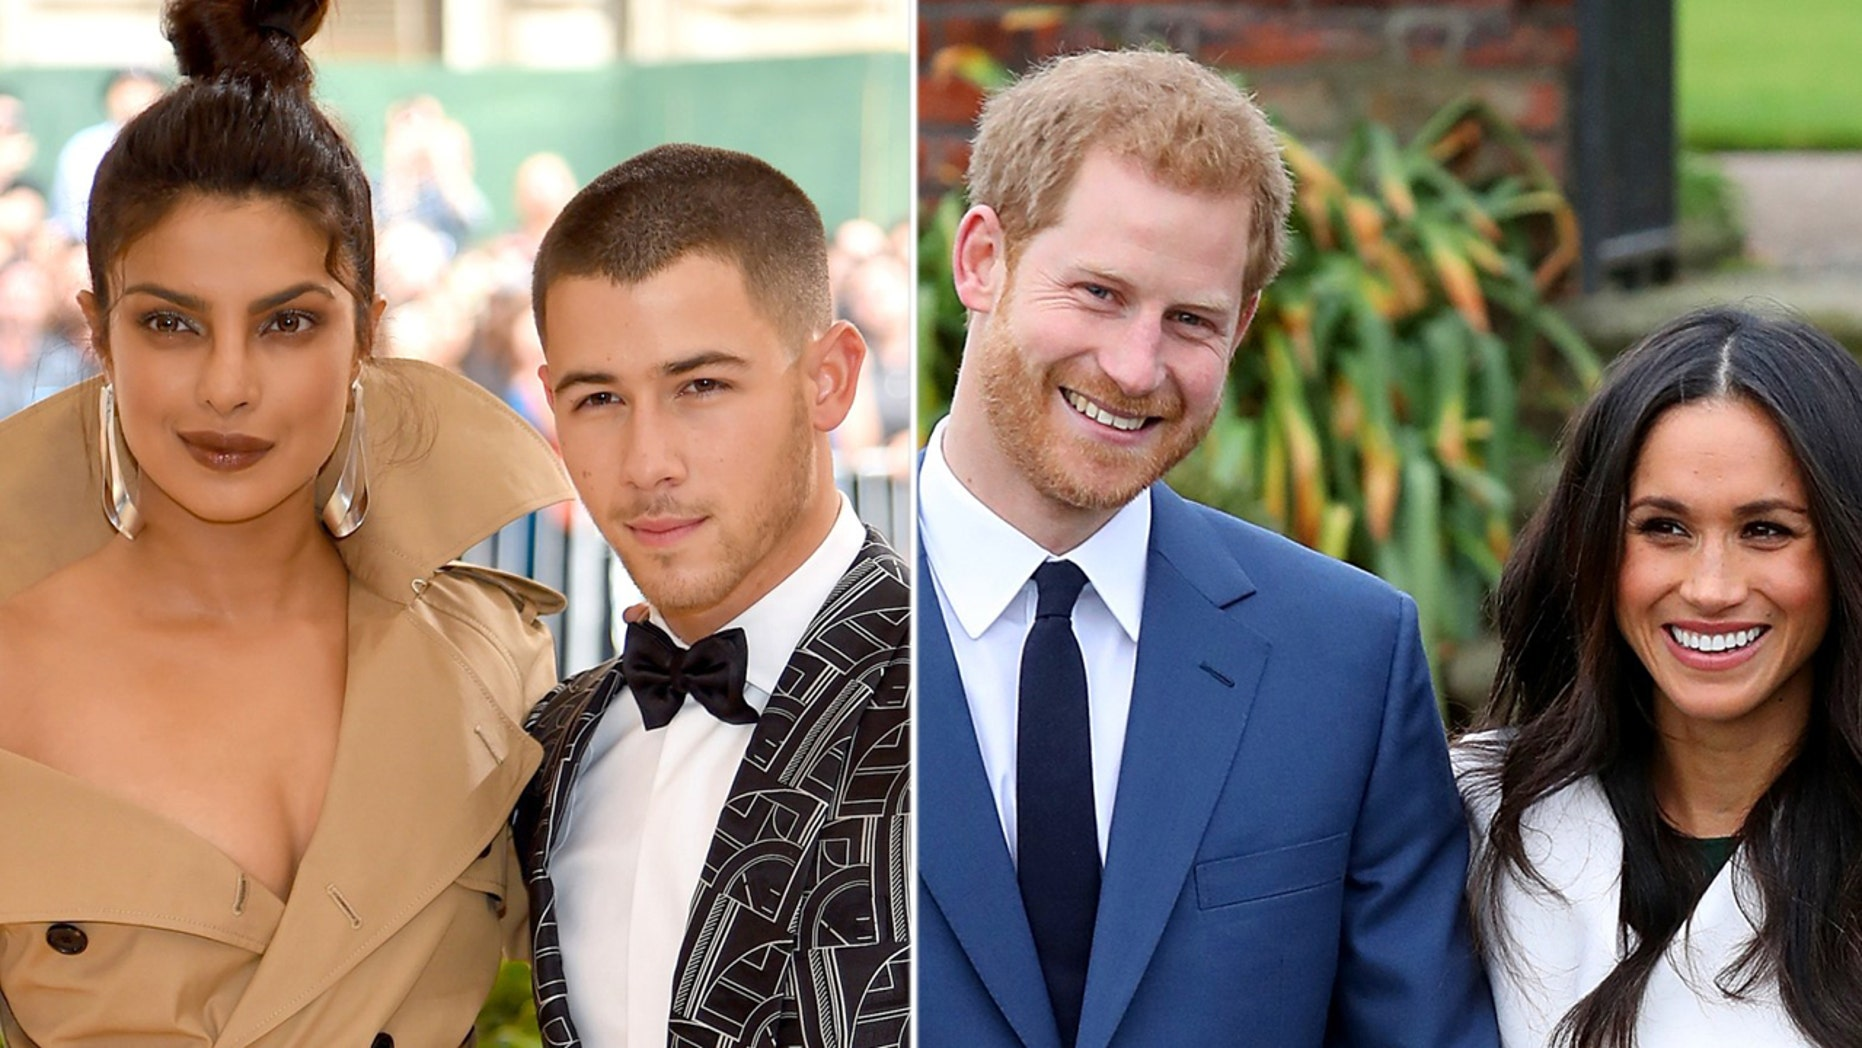 The Duke and Duchess of Sussex reportedly enjoyed a double date with the newly engaged Nick Jonas and Priyanka Chopra.